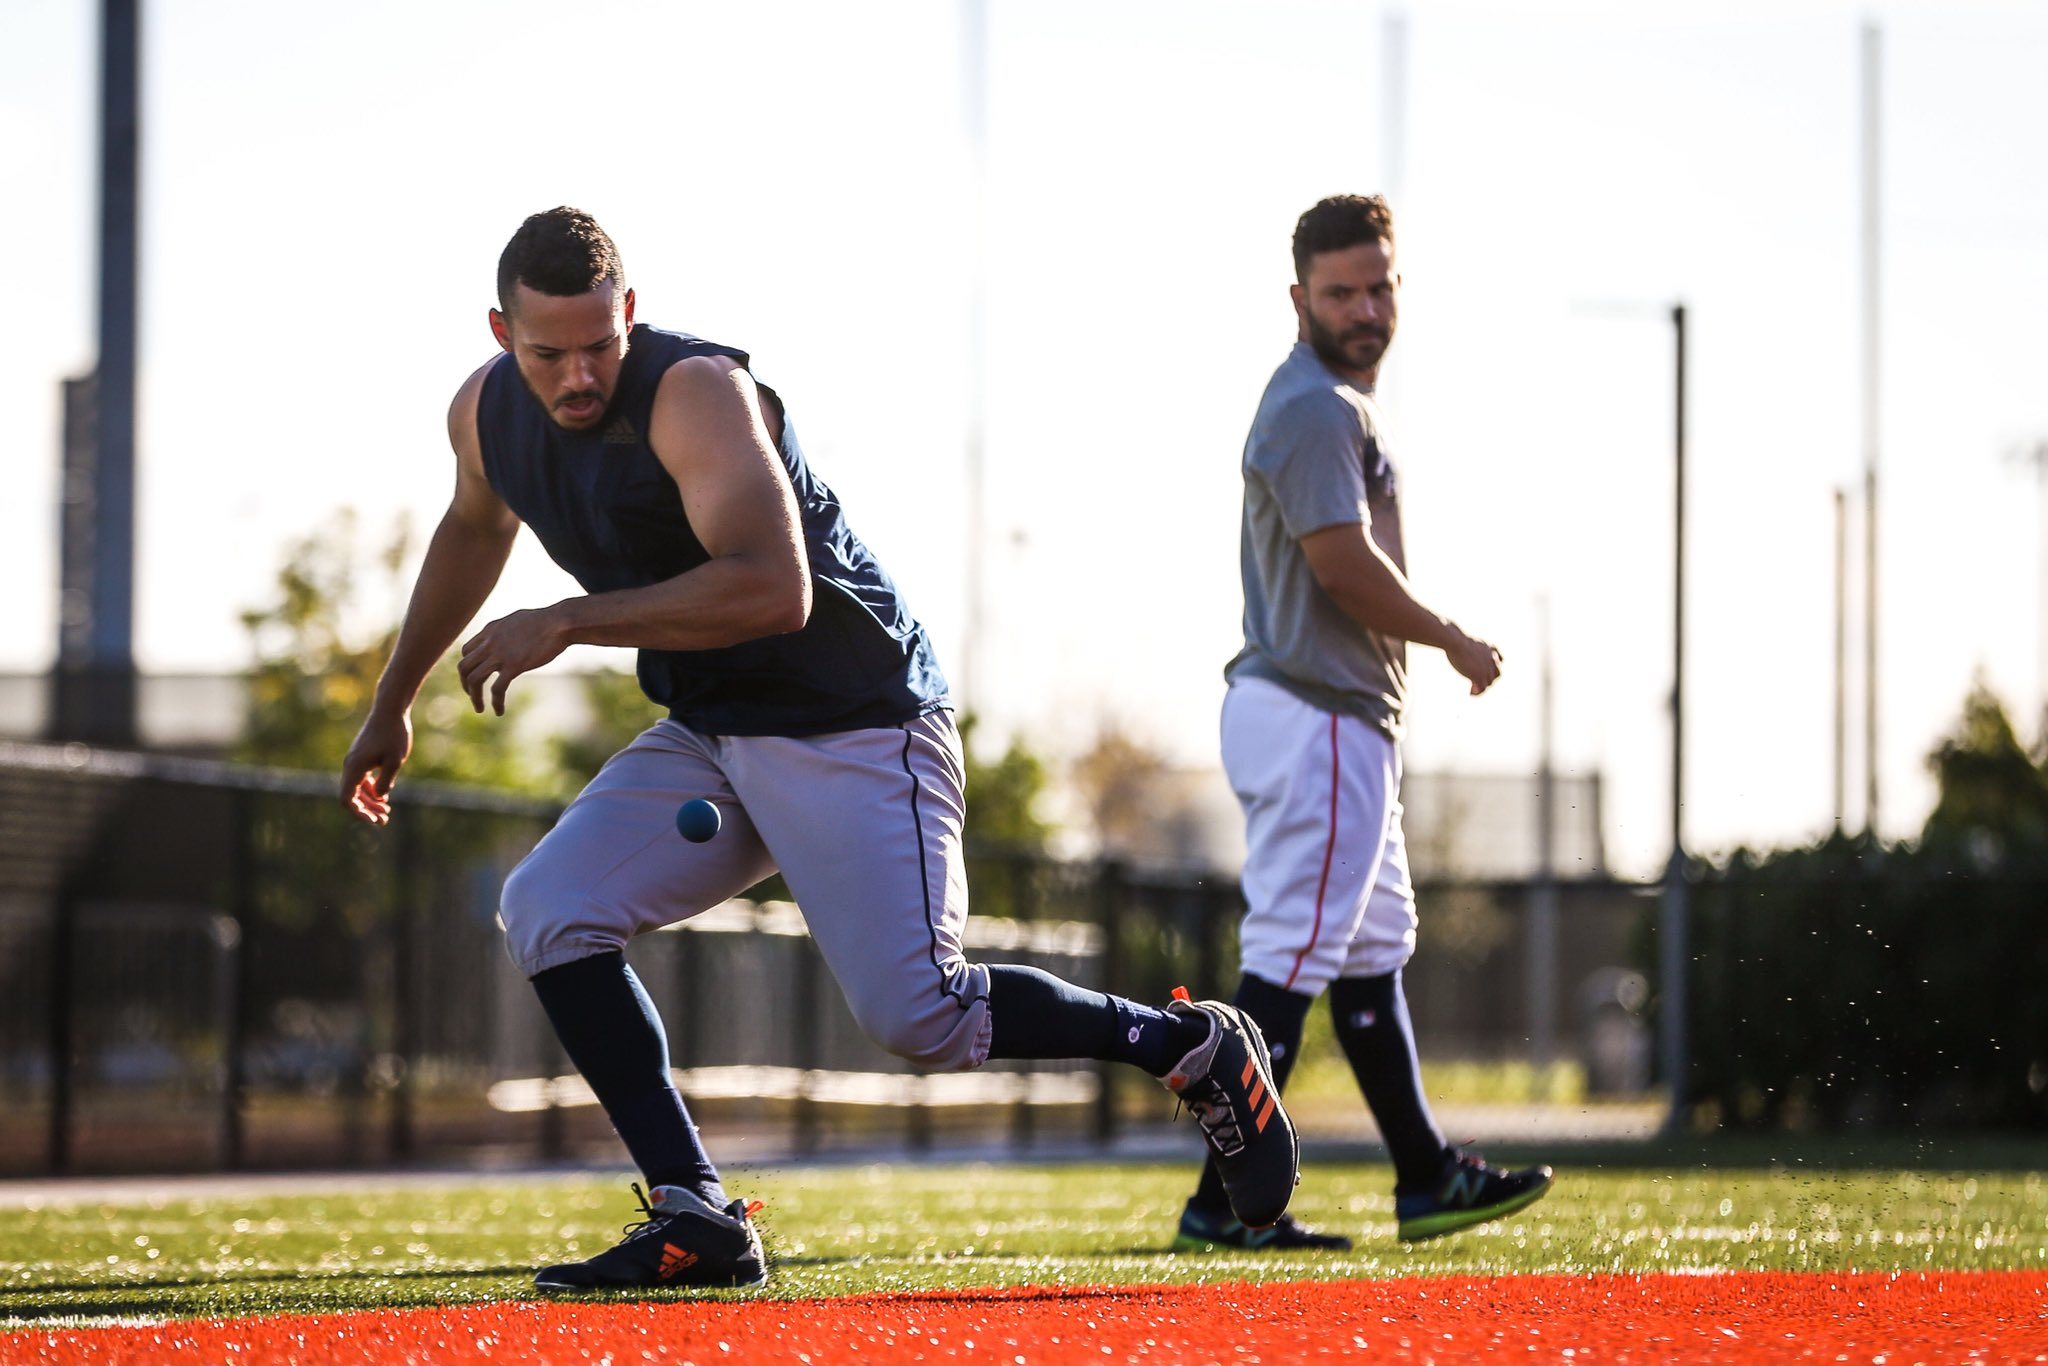 Getting better every day. #NeverSettle https://t.co/5mwRIoeJPm